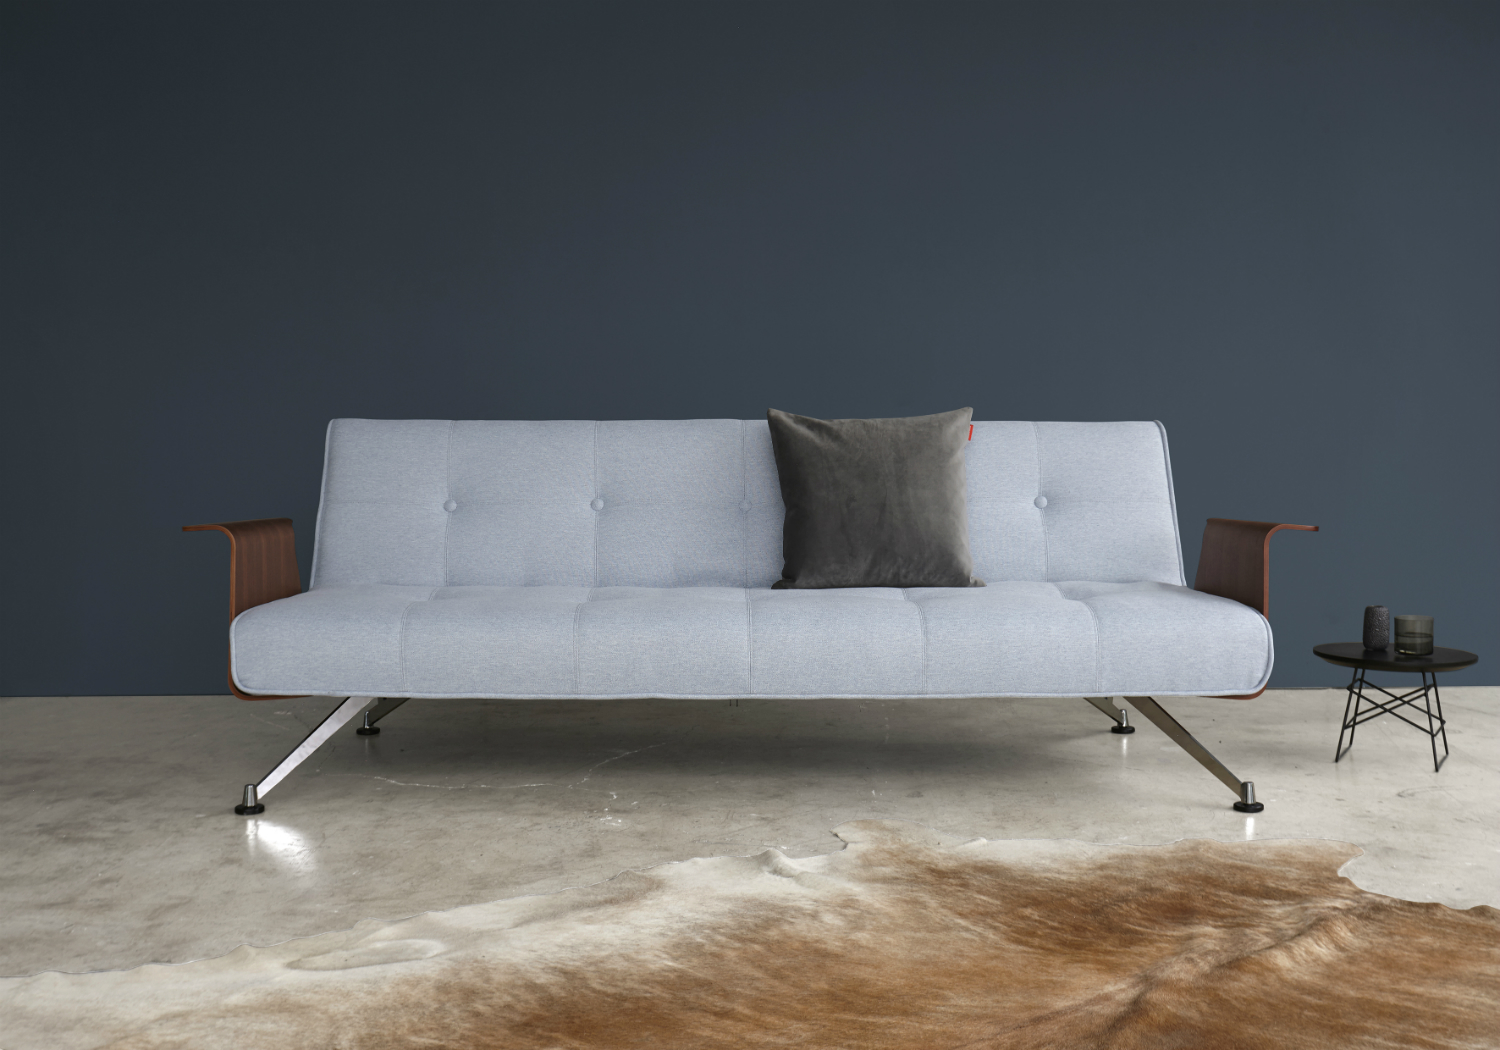 Clubber-sofa-bed-arms-556-soft-icy blue-1-internet edit